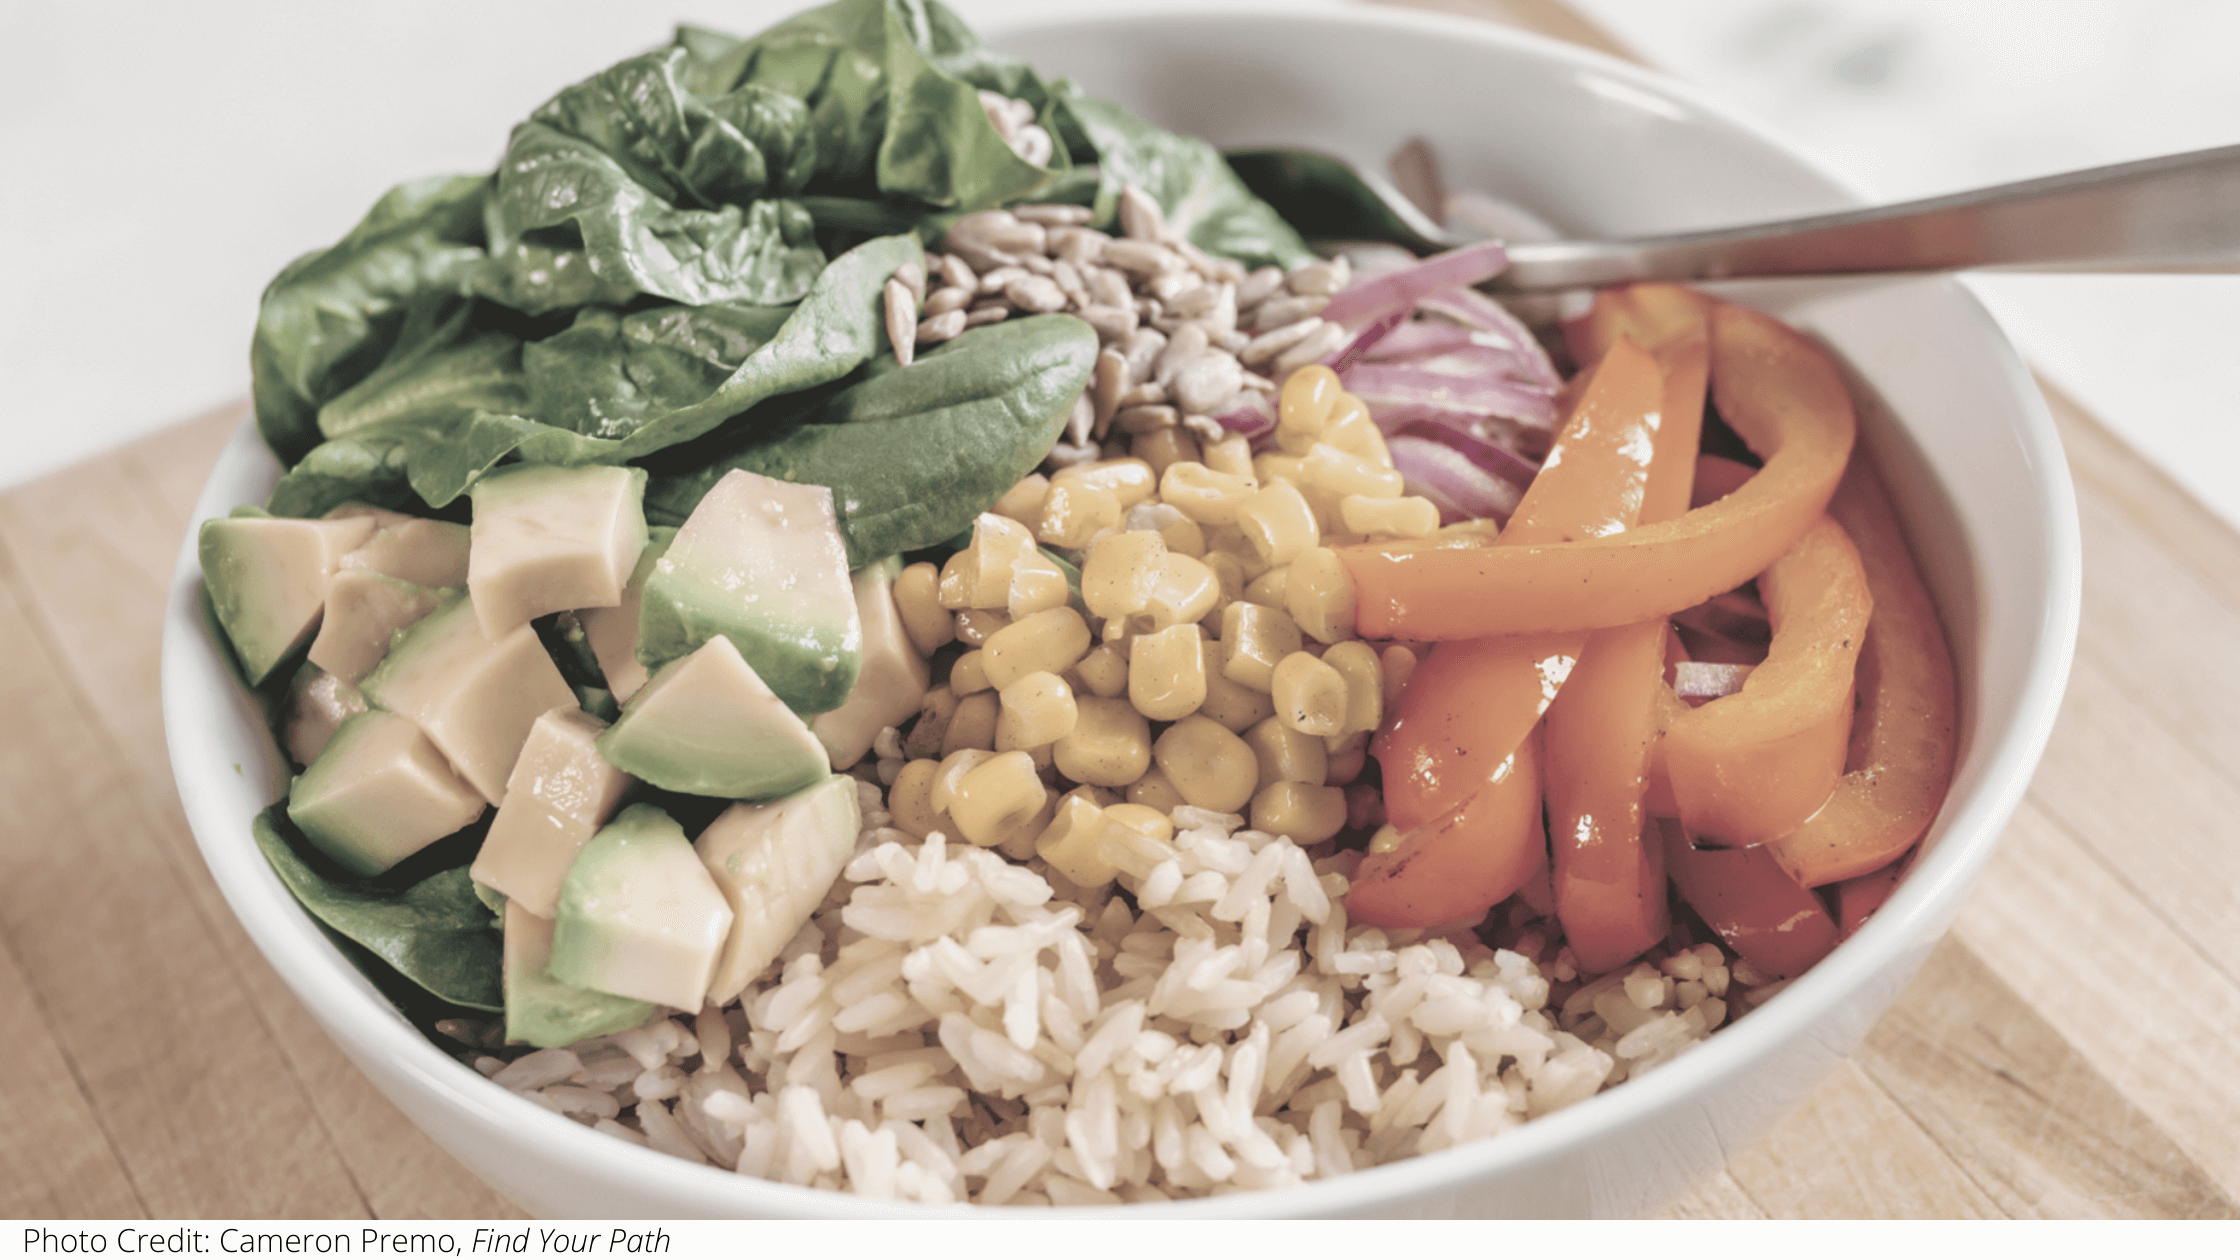 A delicious bowl of rice, avocado, peppers, corn, and more.